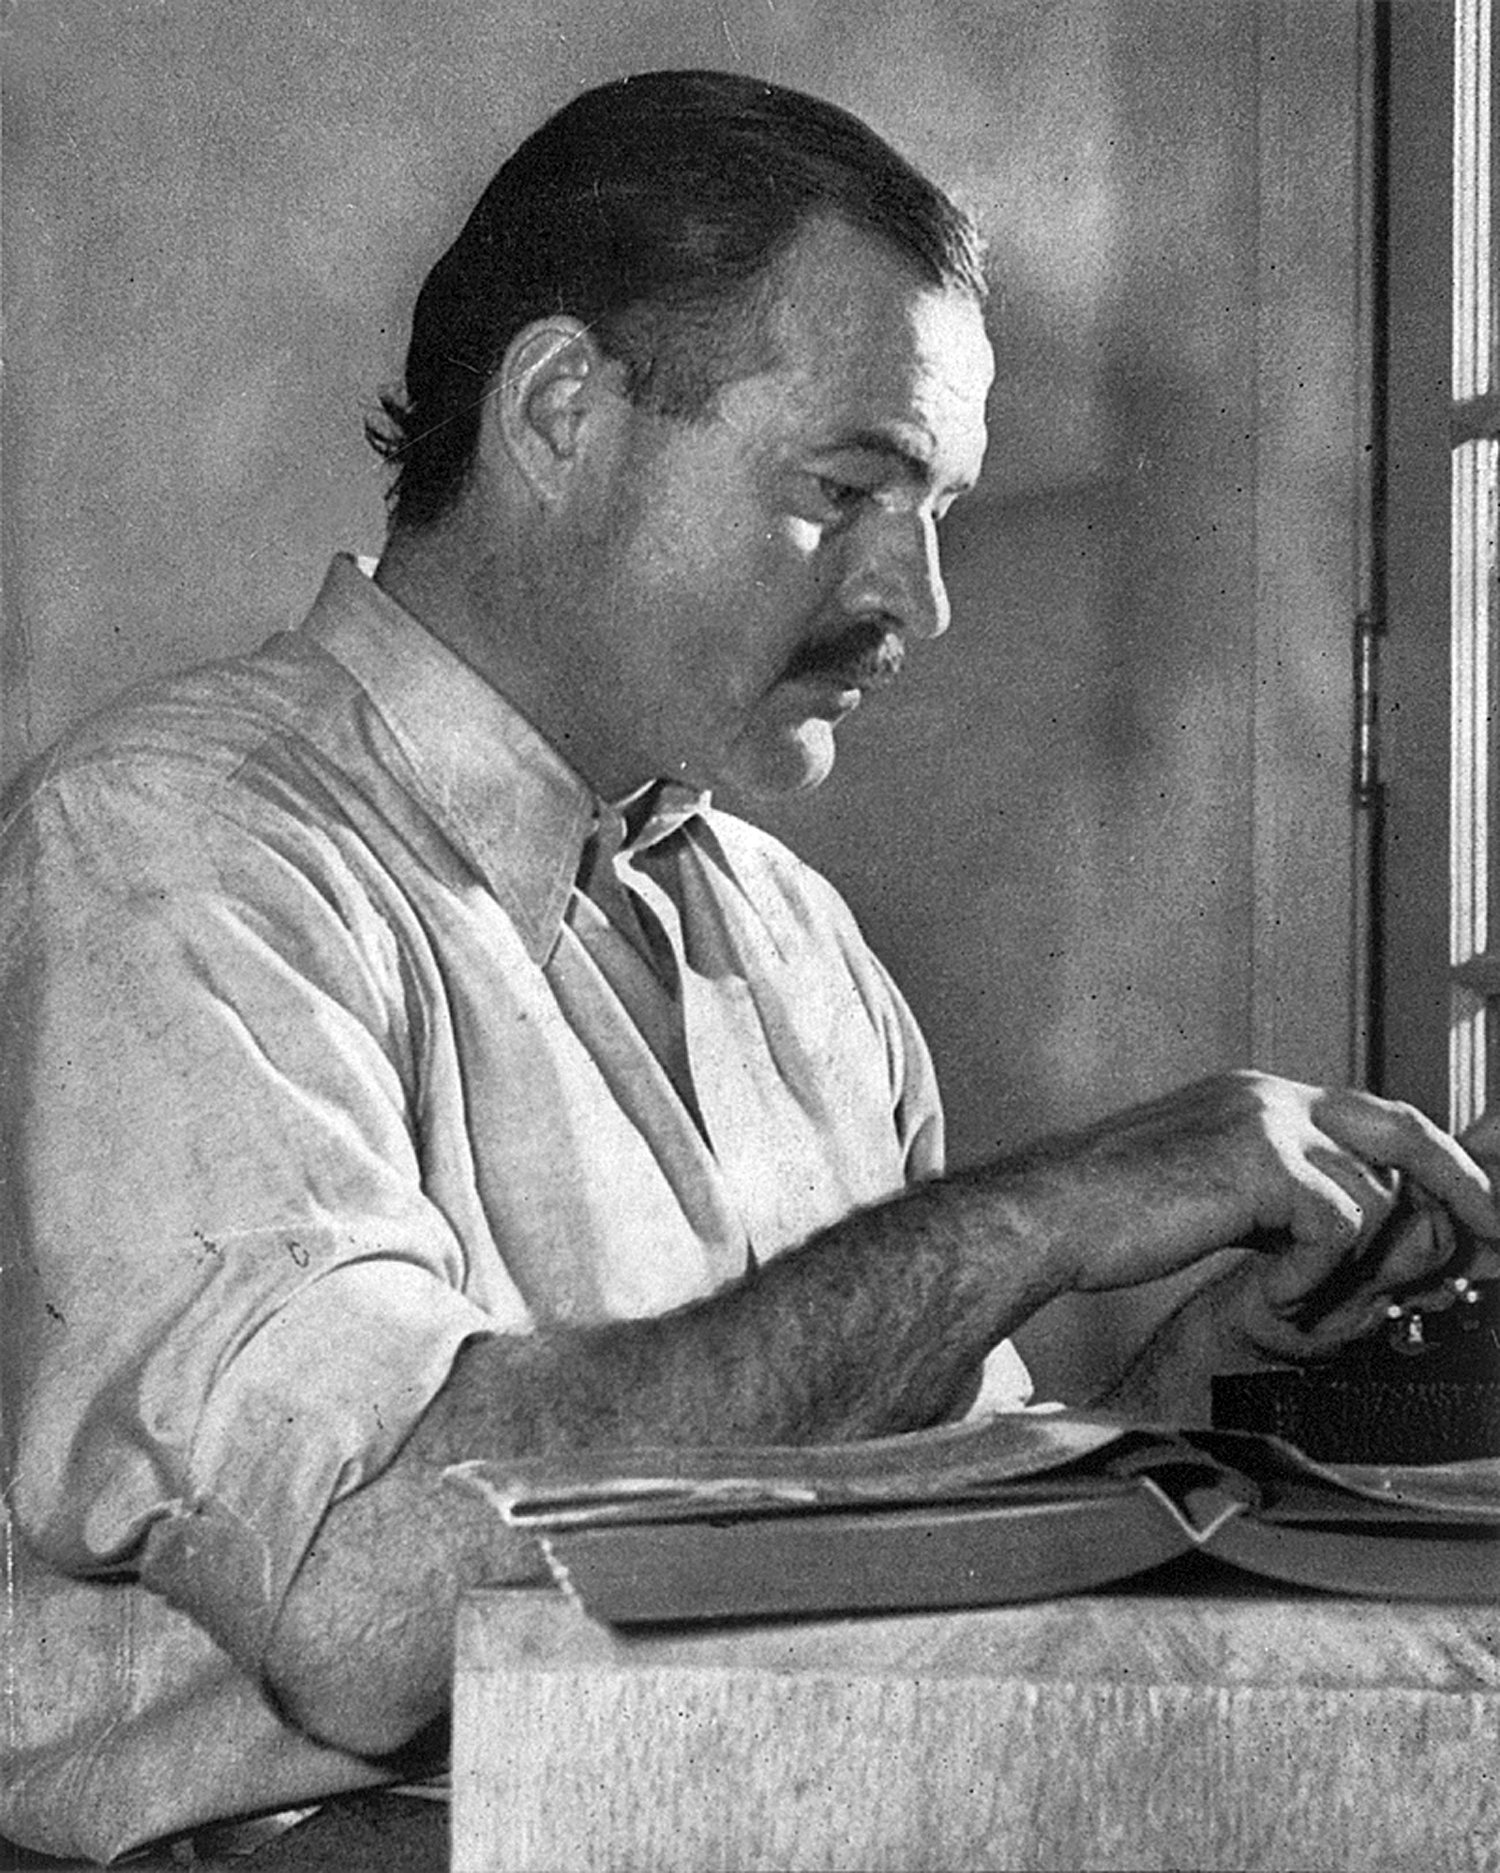 Ernest Hemingway working at his book ''For Whom the Bell Tolls'' at Sun Valley, Idaho in December 1939